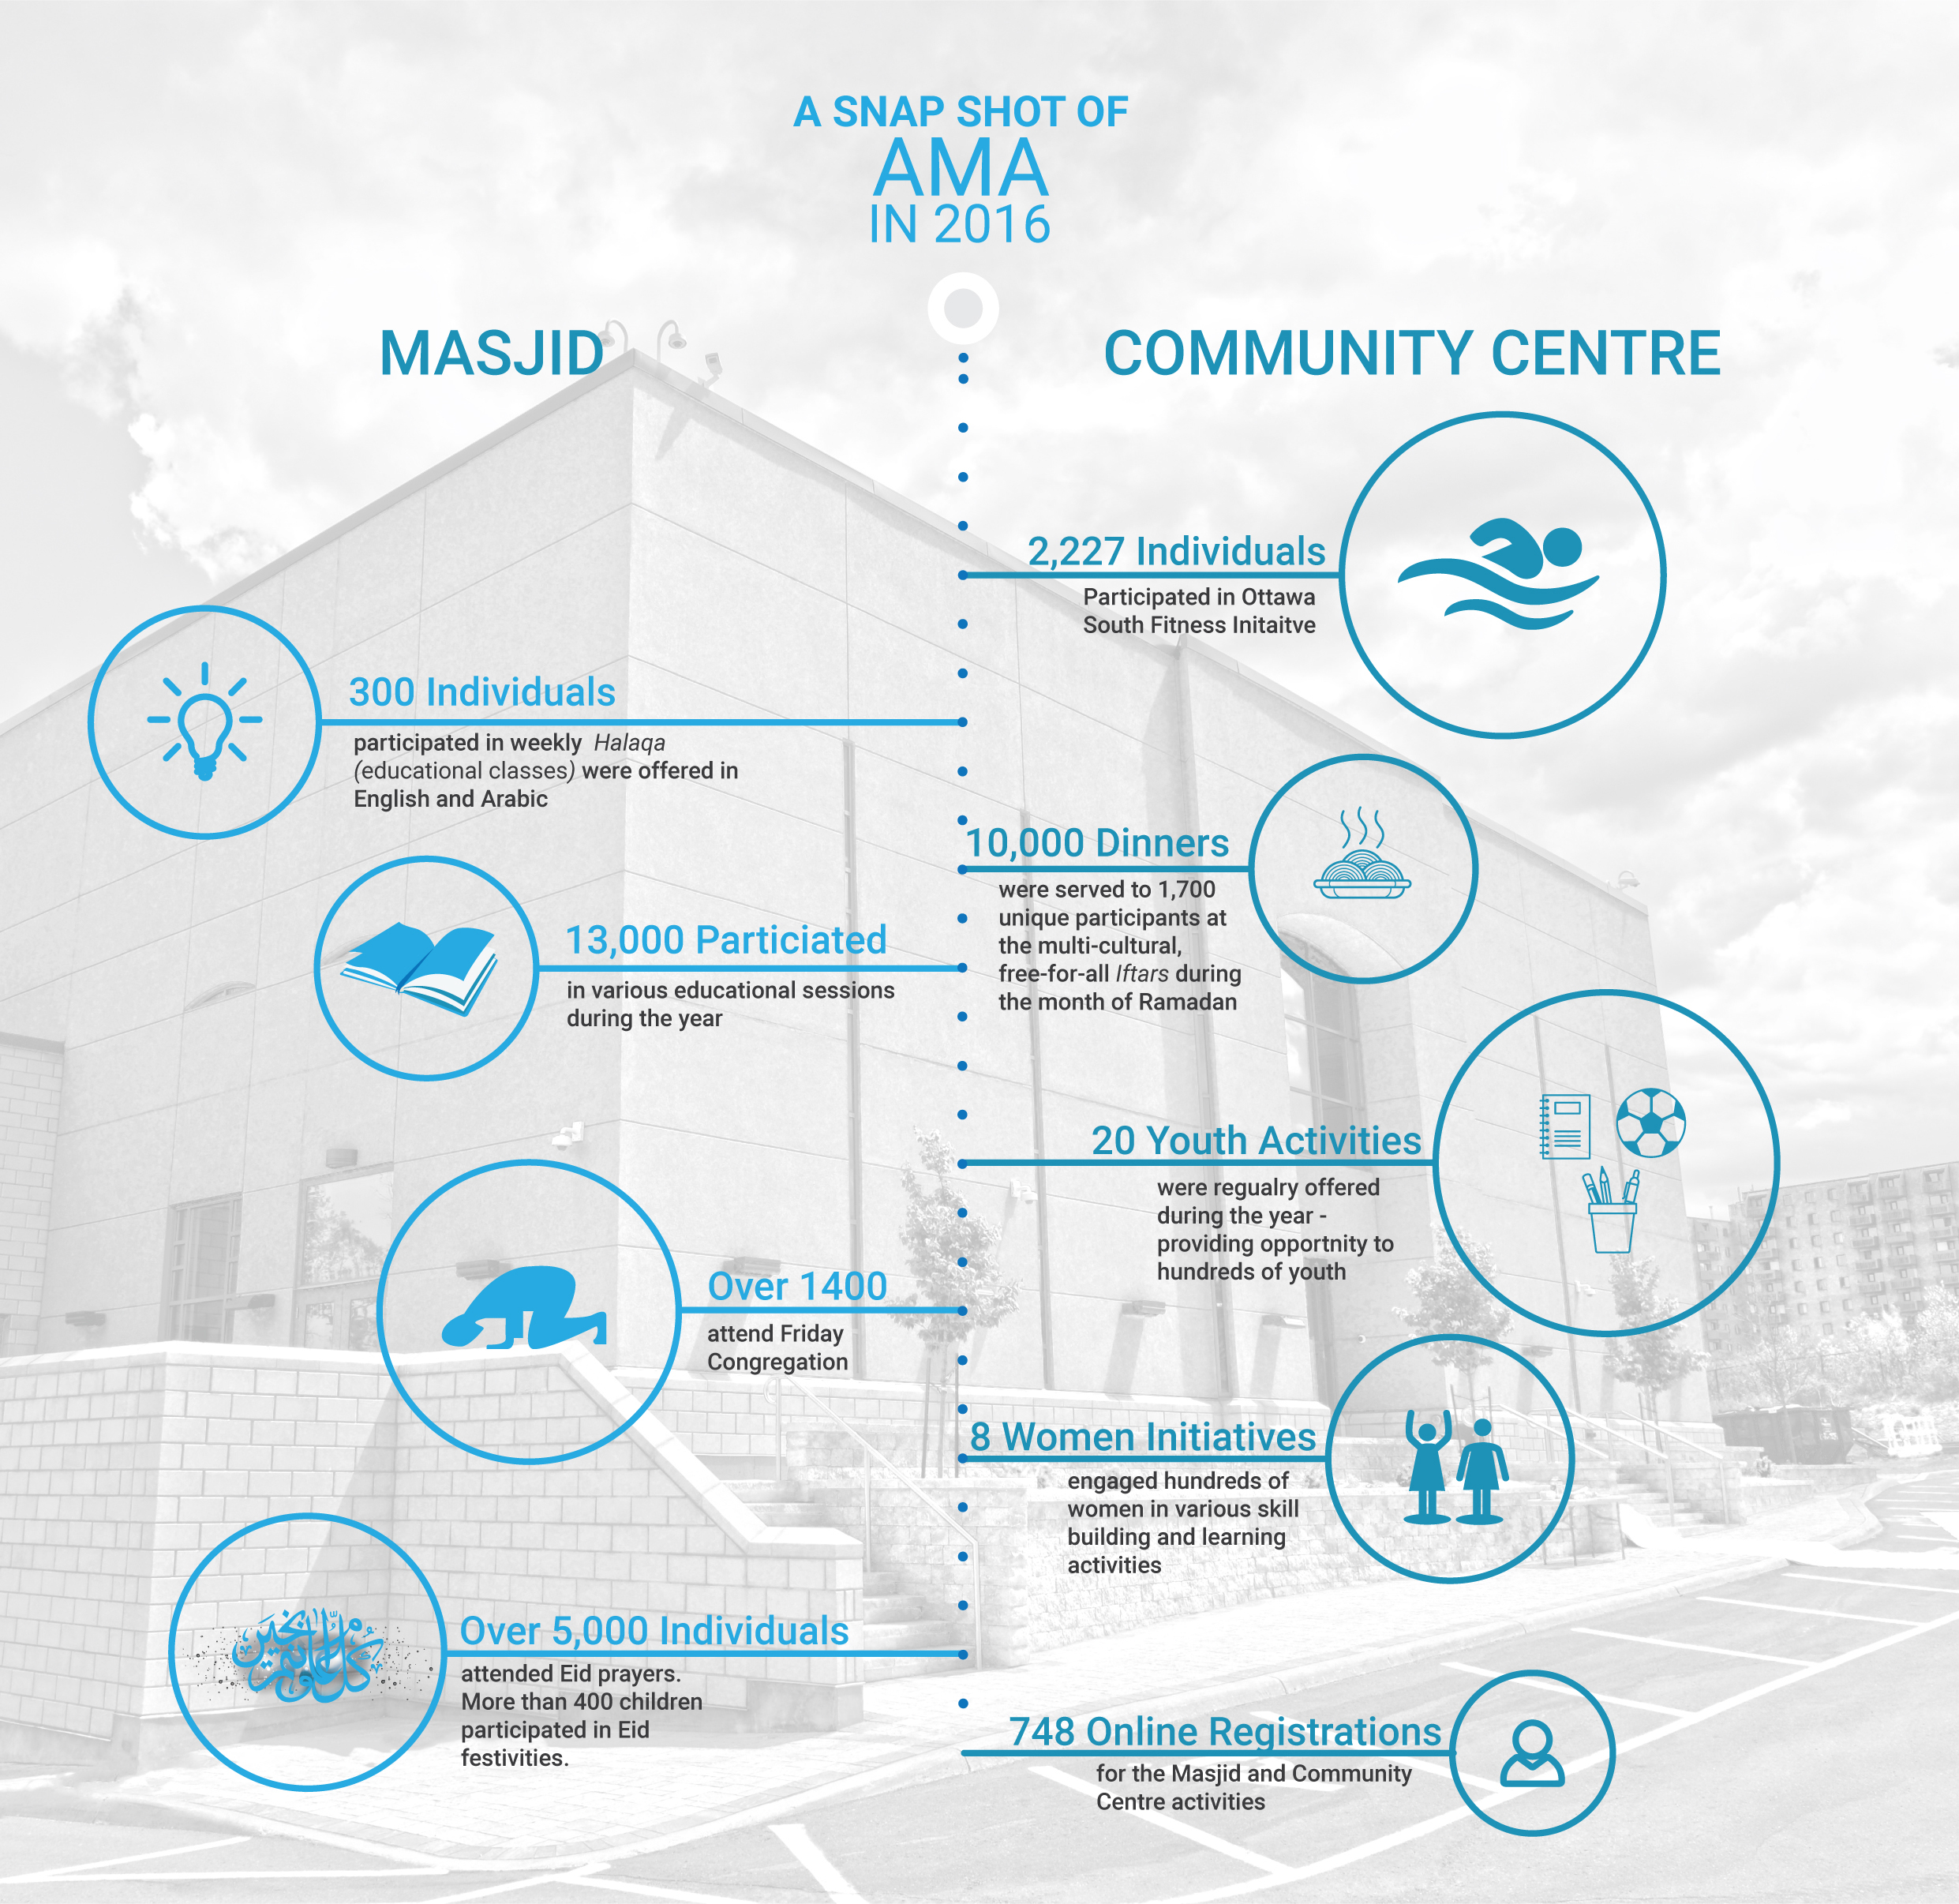 AMA's Progress at Glance